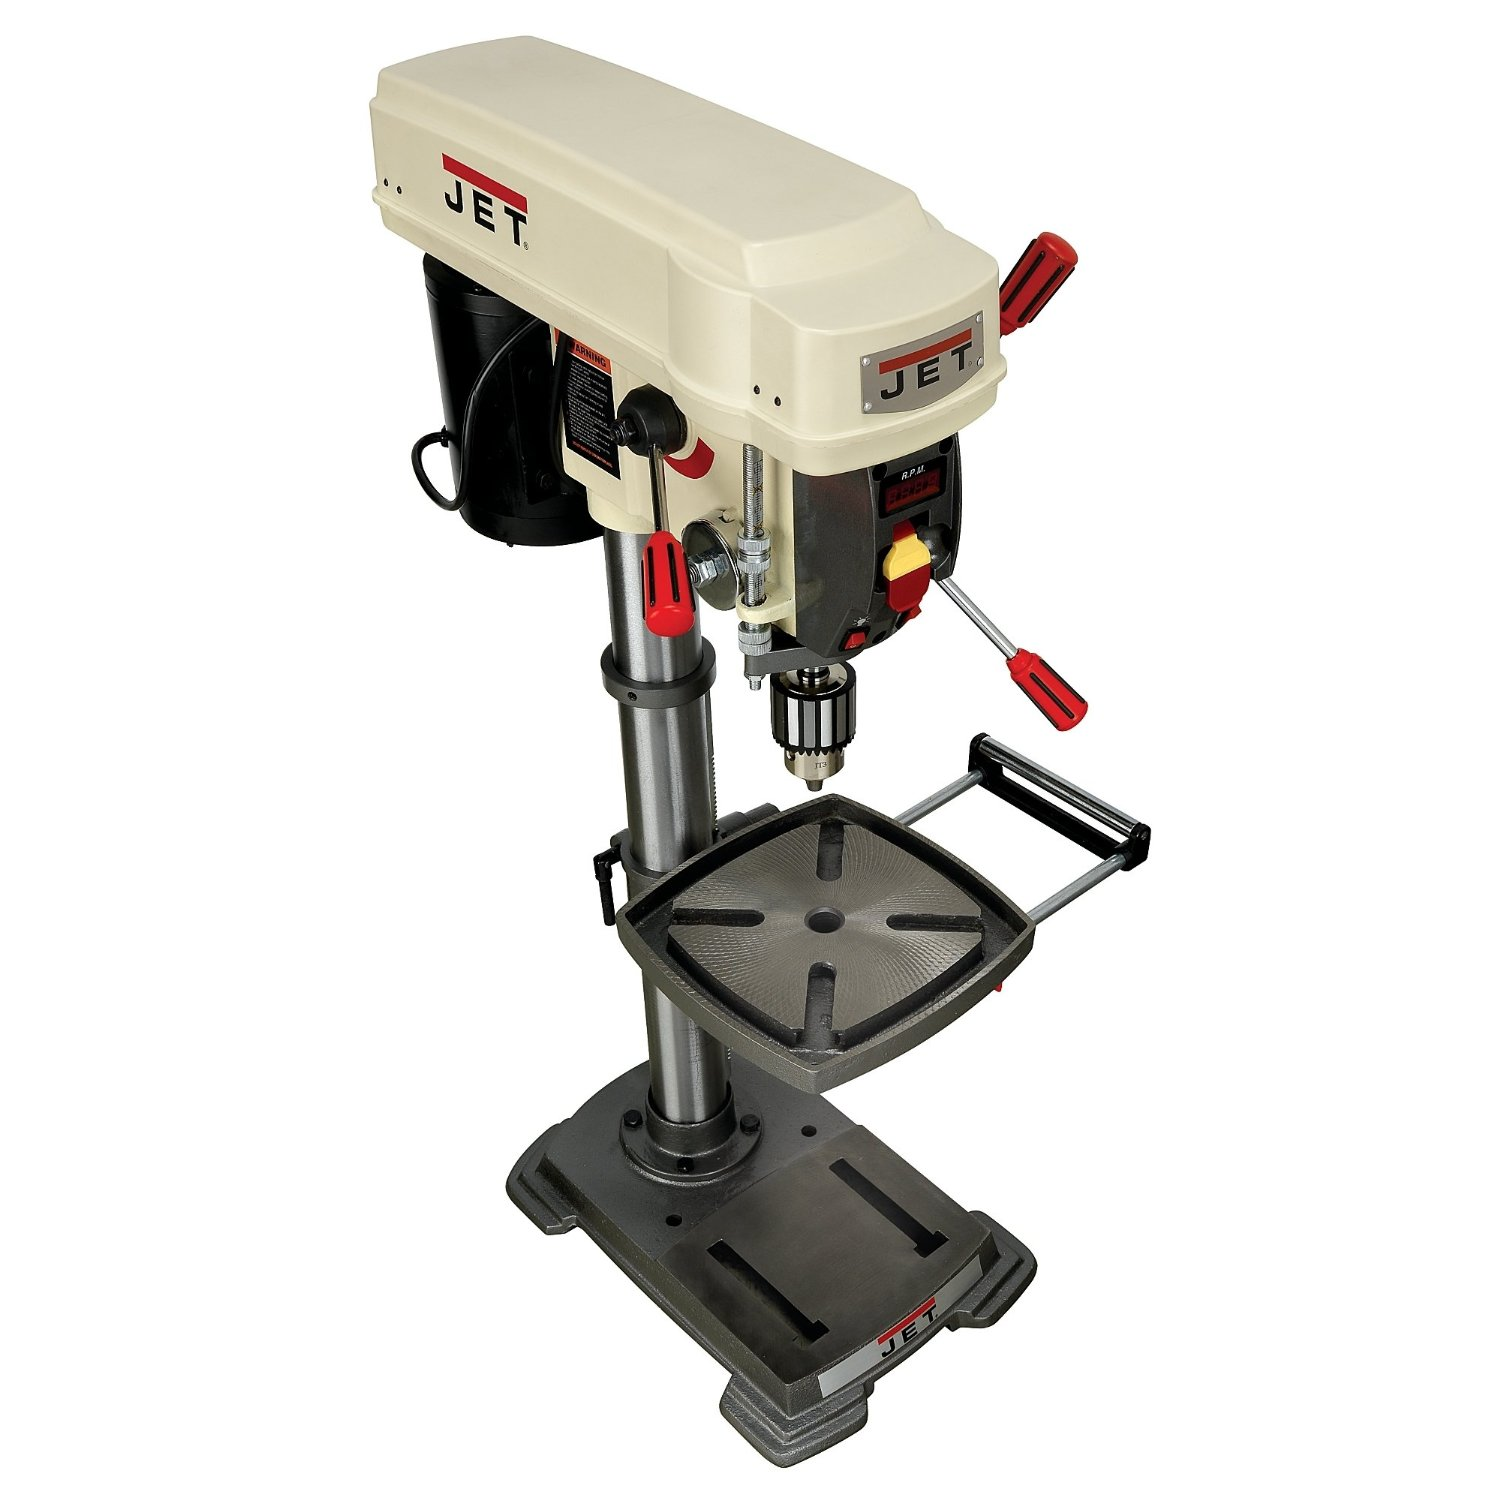 Top 10 Benchtop Drill Press Tools — Best Reviews in 2017